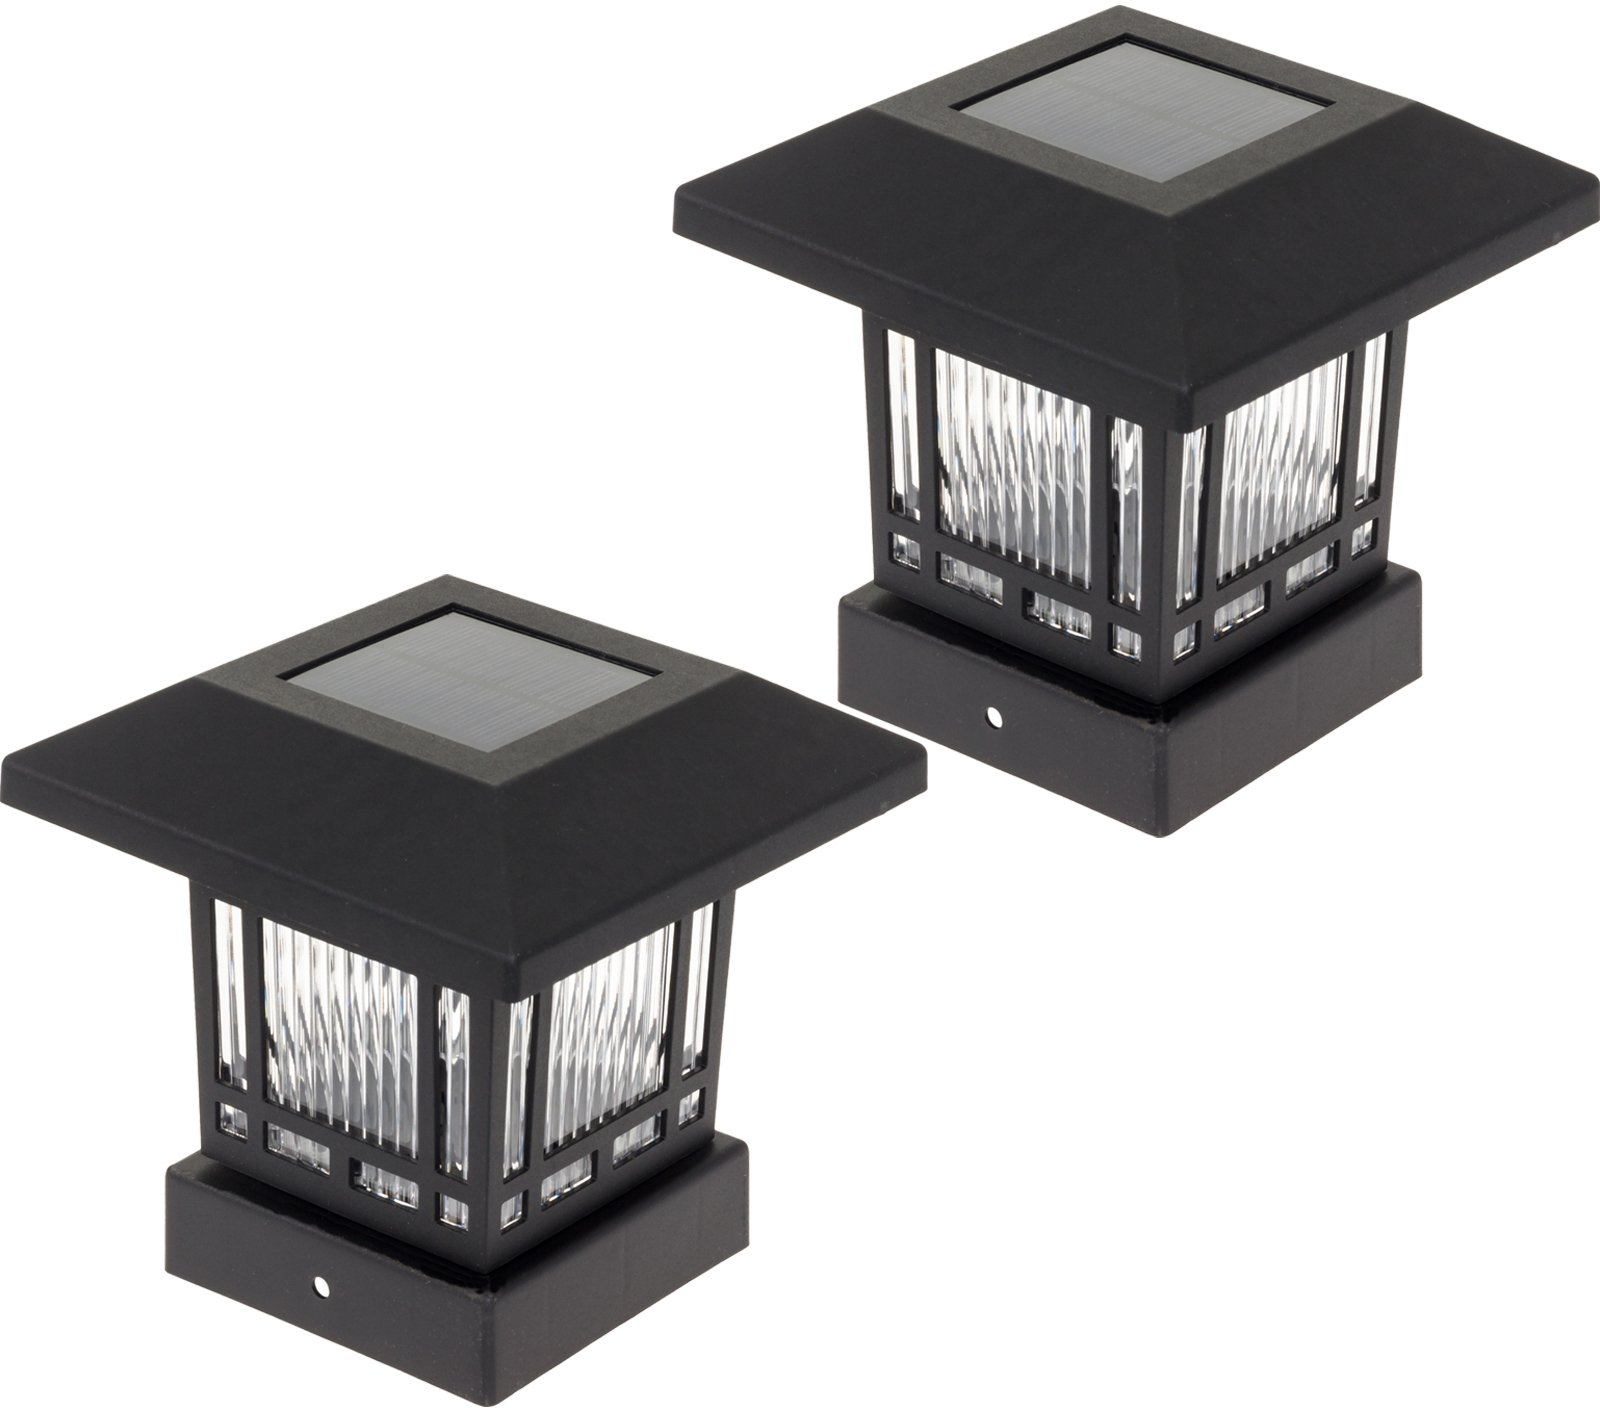 Westinghouse Solar 20 Lumens 4x4 Post Light for Wood Posts (Black, 2 Pack